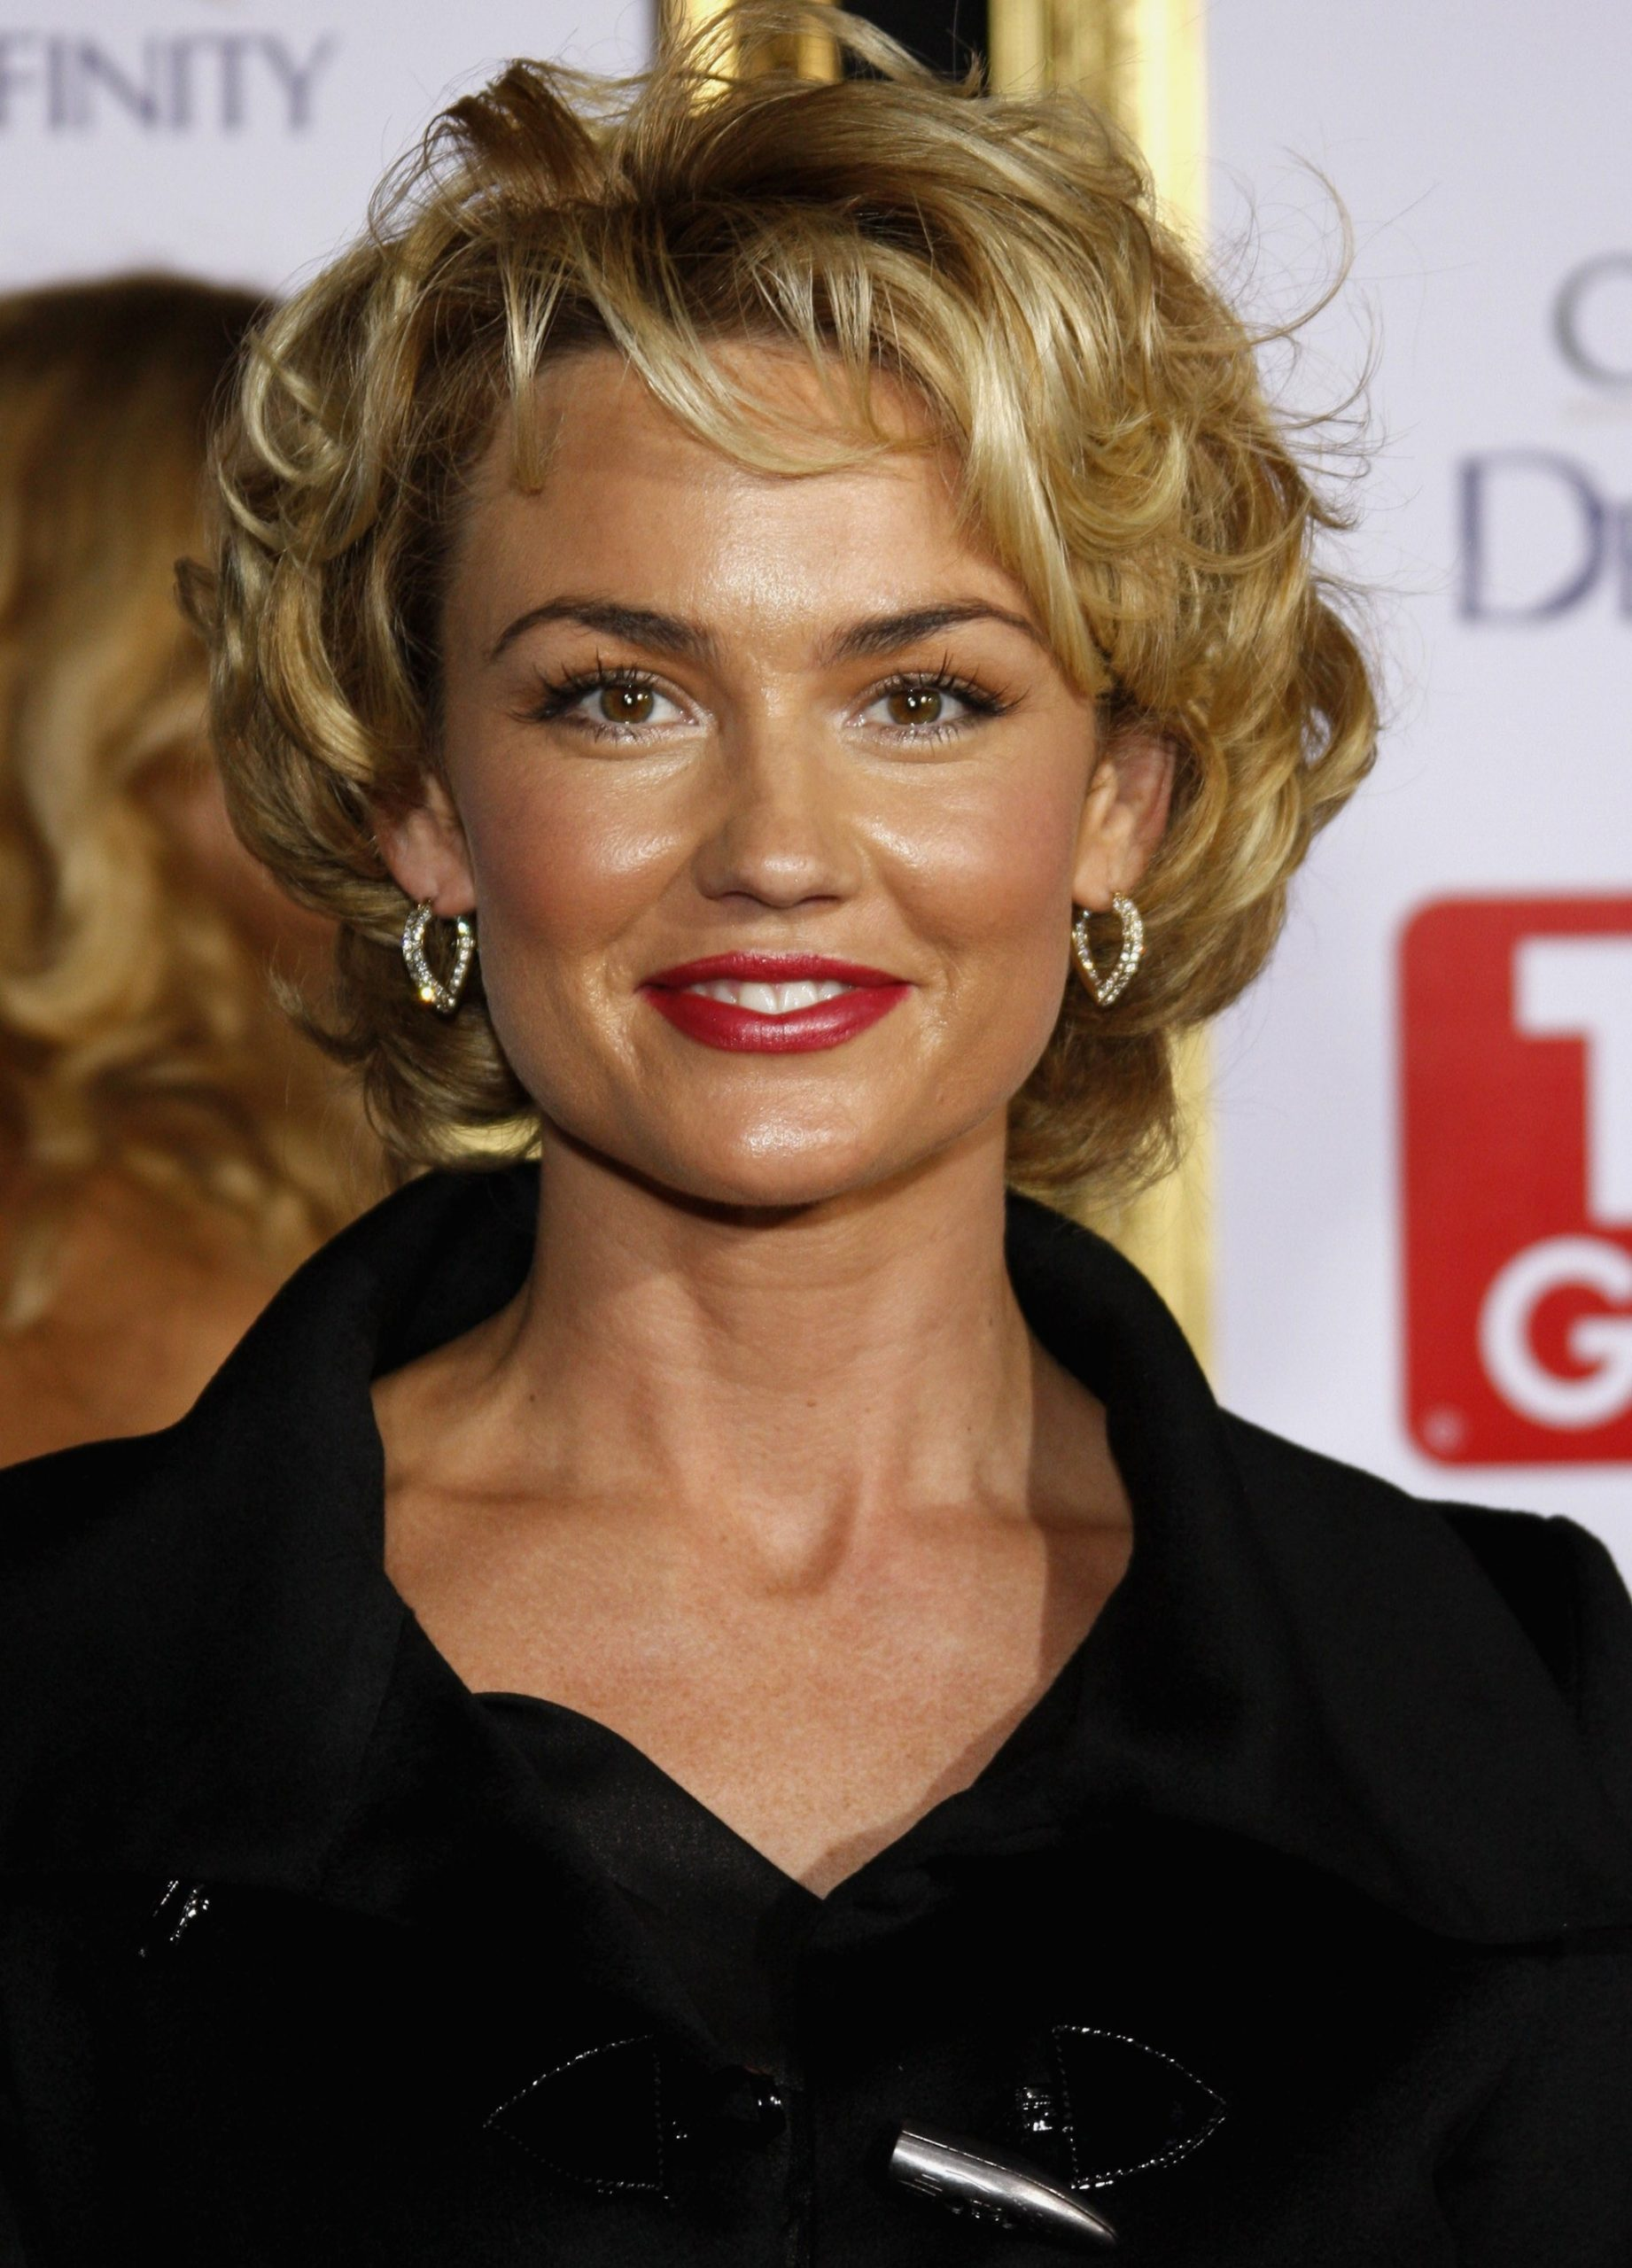 Here are some short hairstyles for mature women who are working